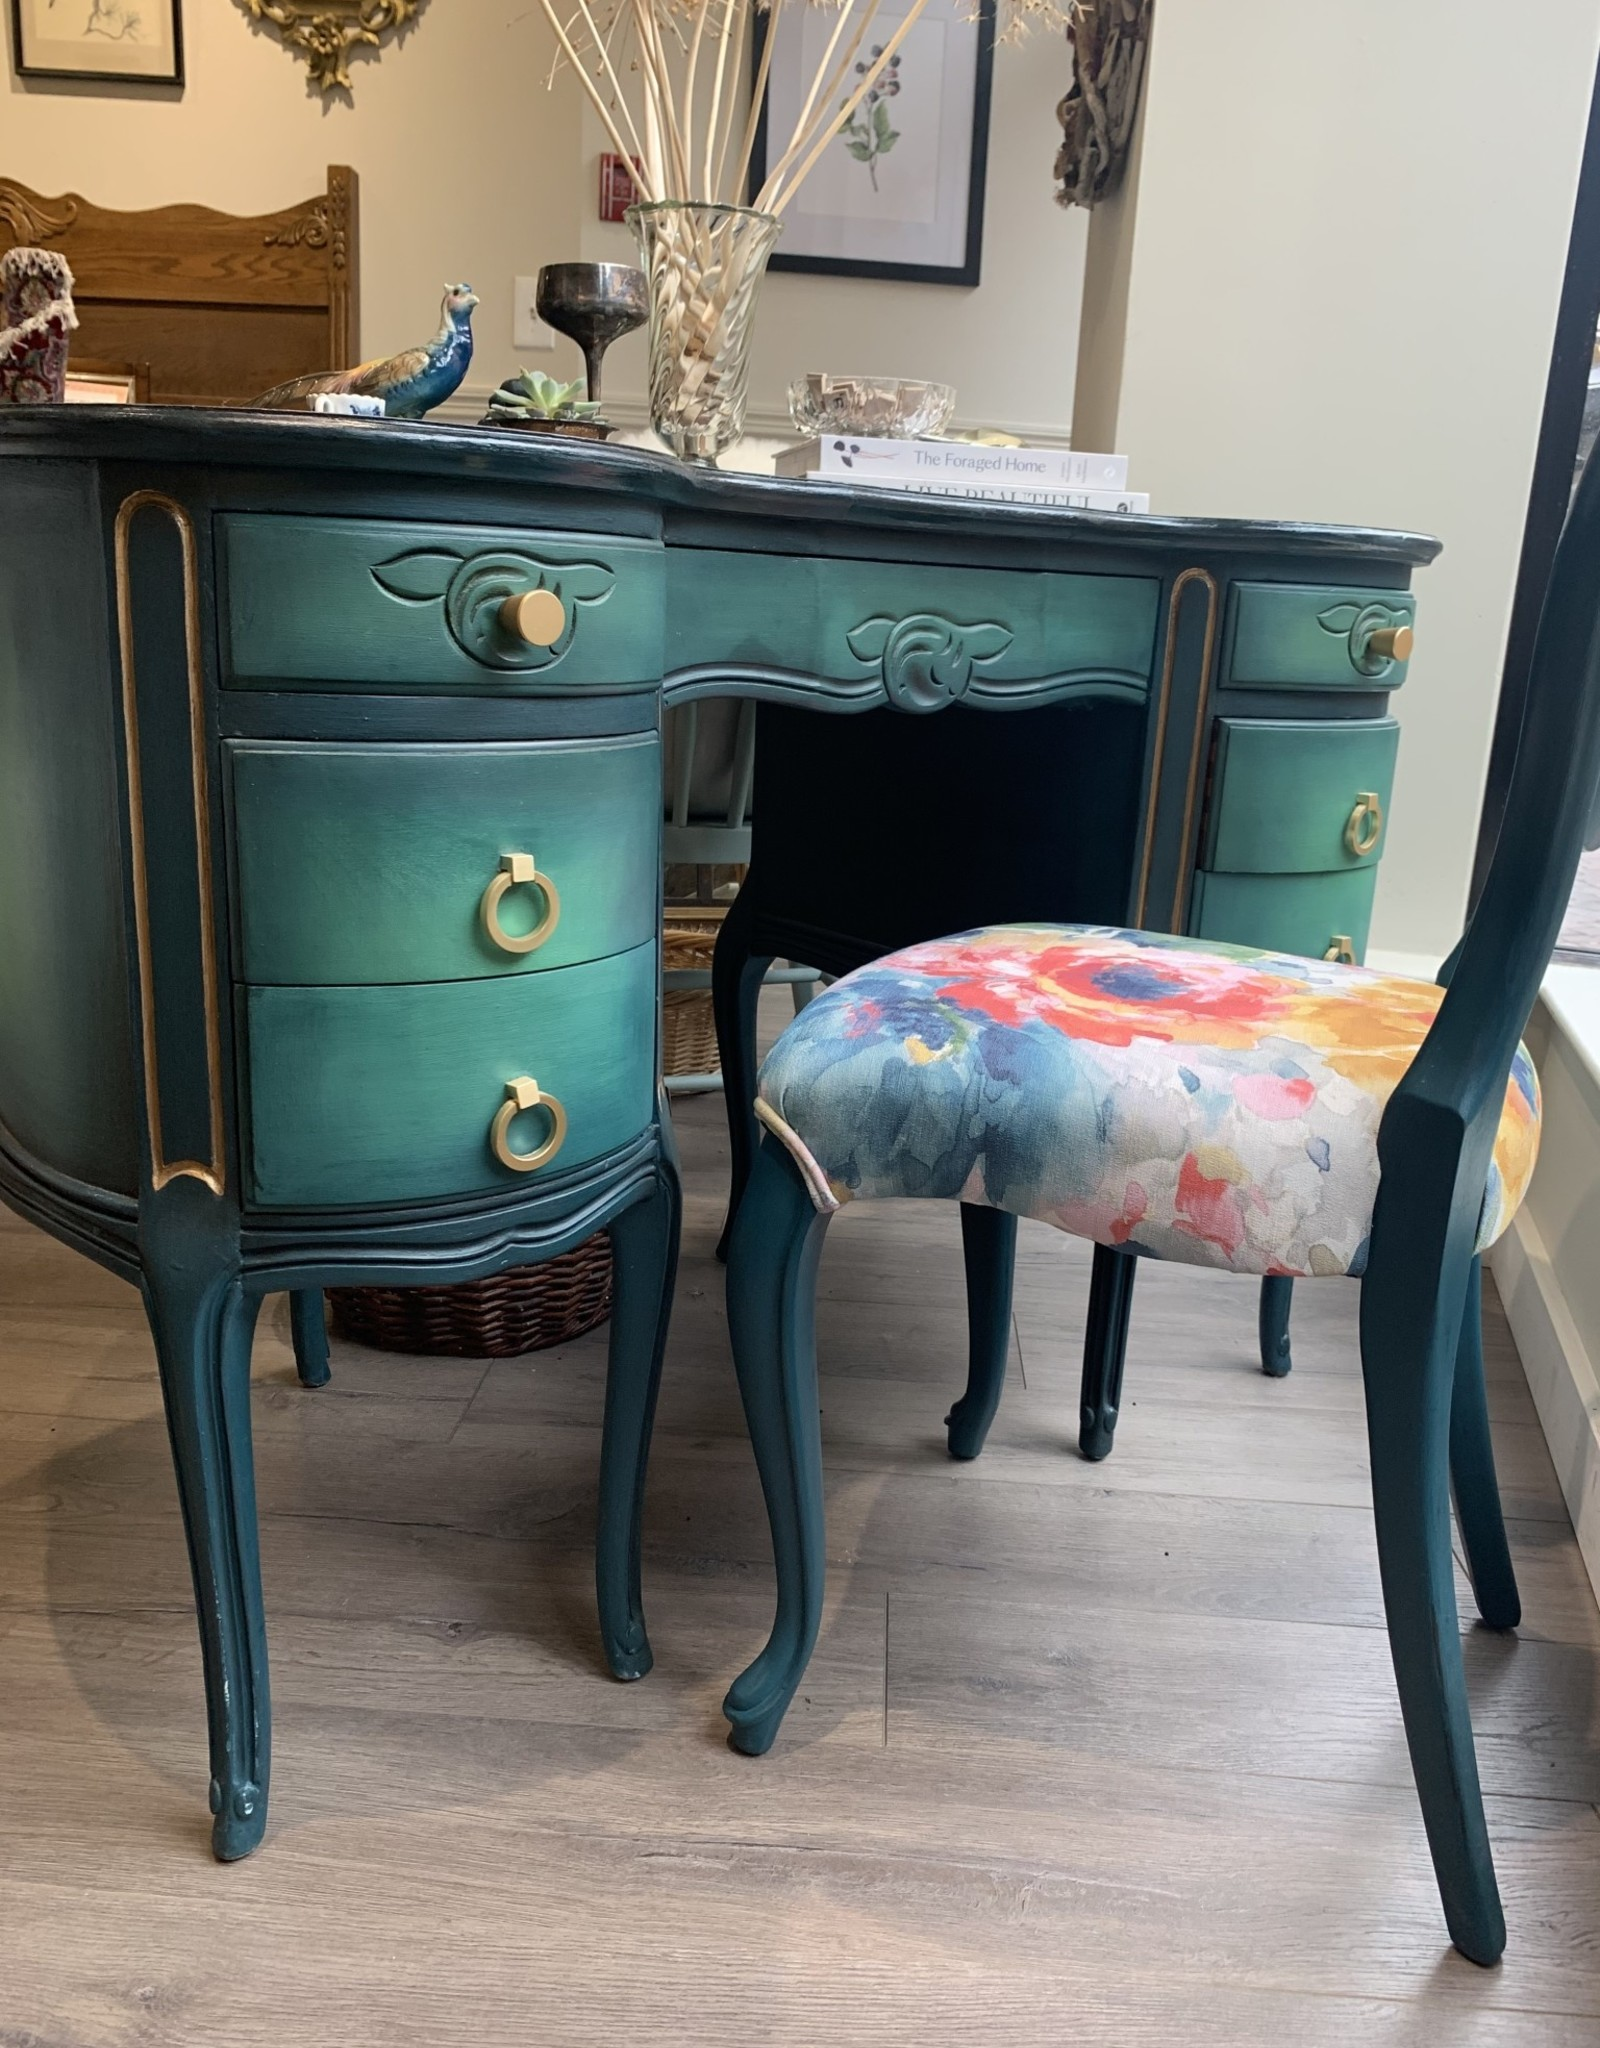 Re-Inc Refinishing Antique desk with chair